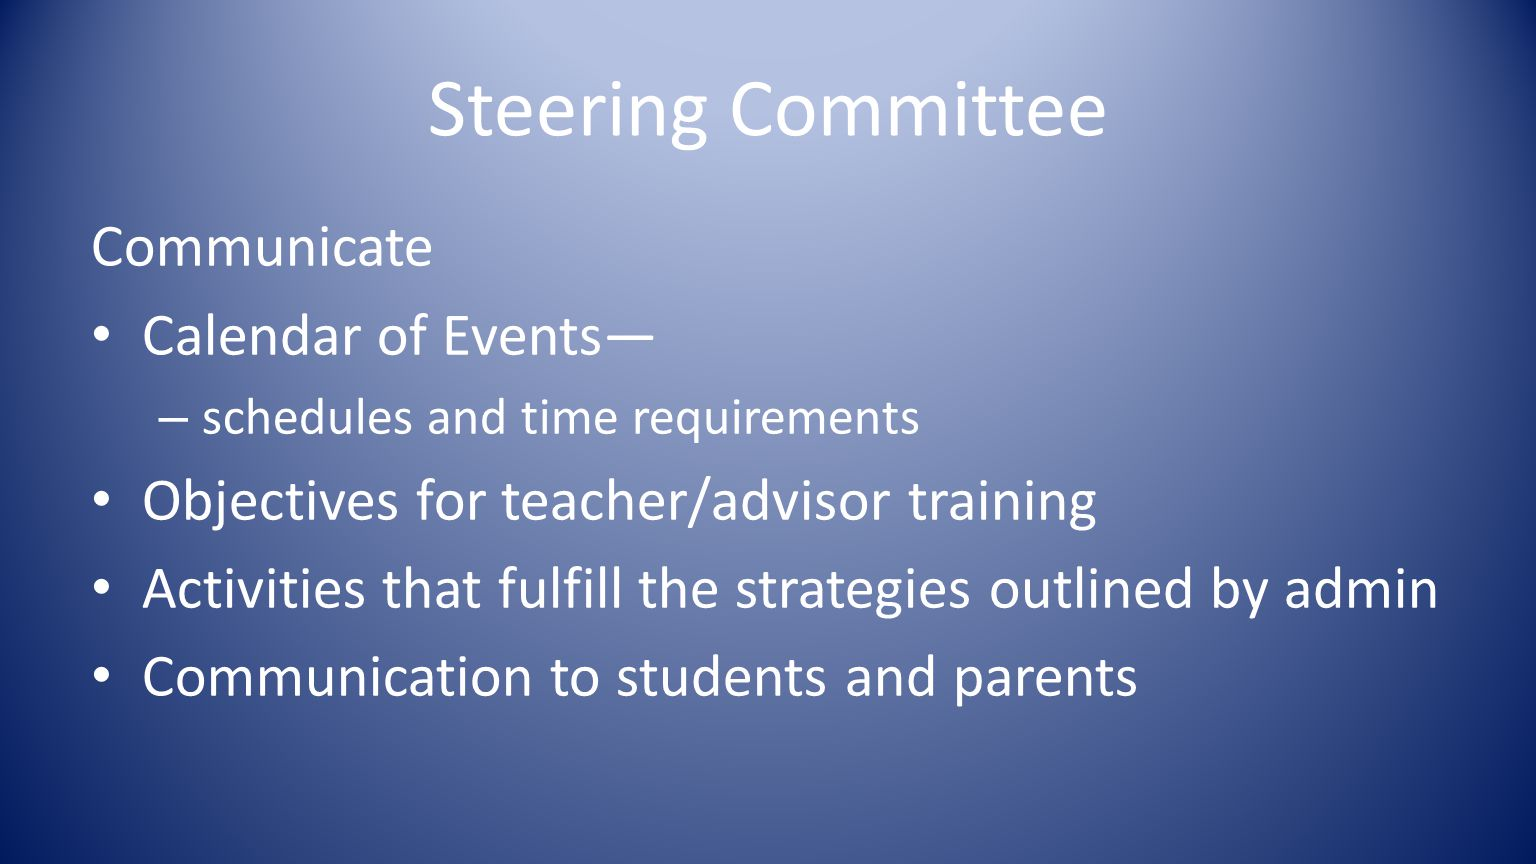 Steering Committee Communicate Calendar of Events— – schedules and time requirements Objectives for teacher/advisor training Activities that fulfill the strategies outlined by admin Communication to students and parents